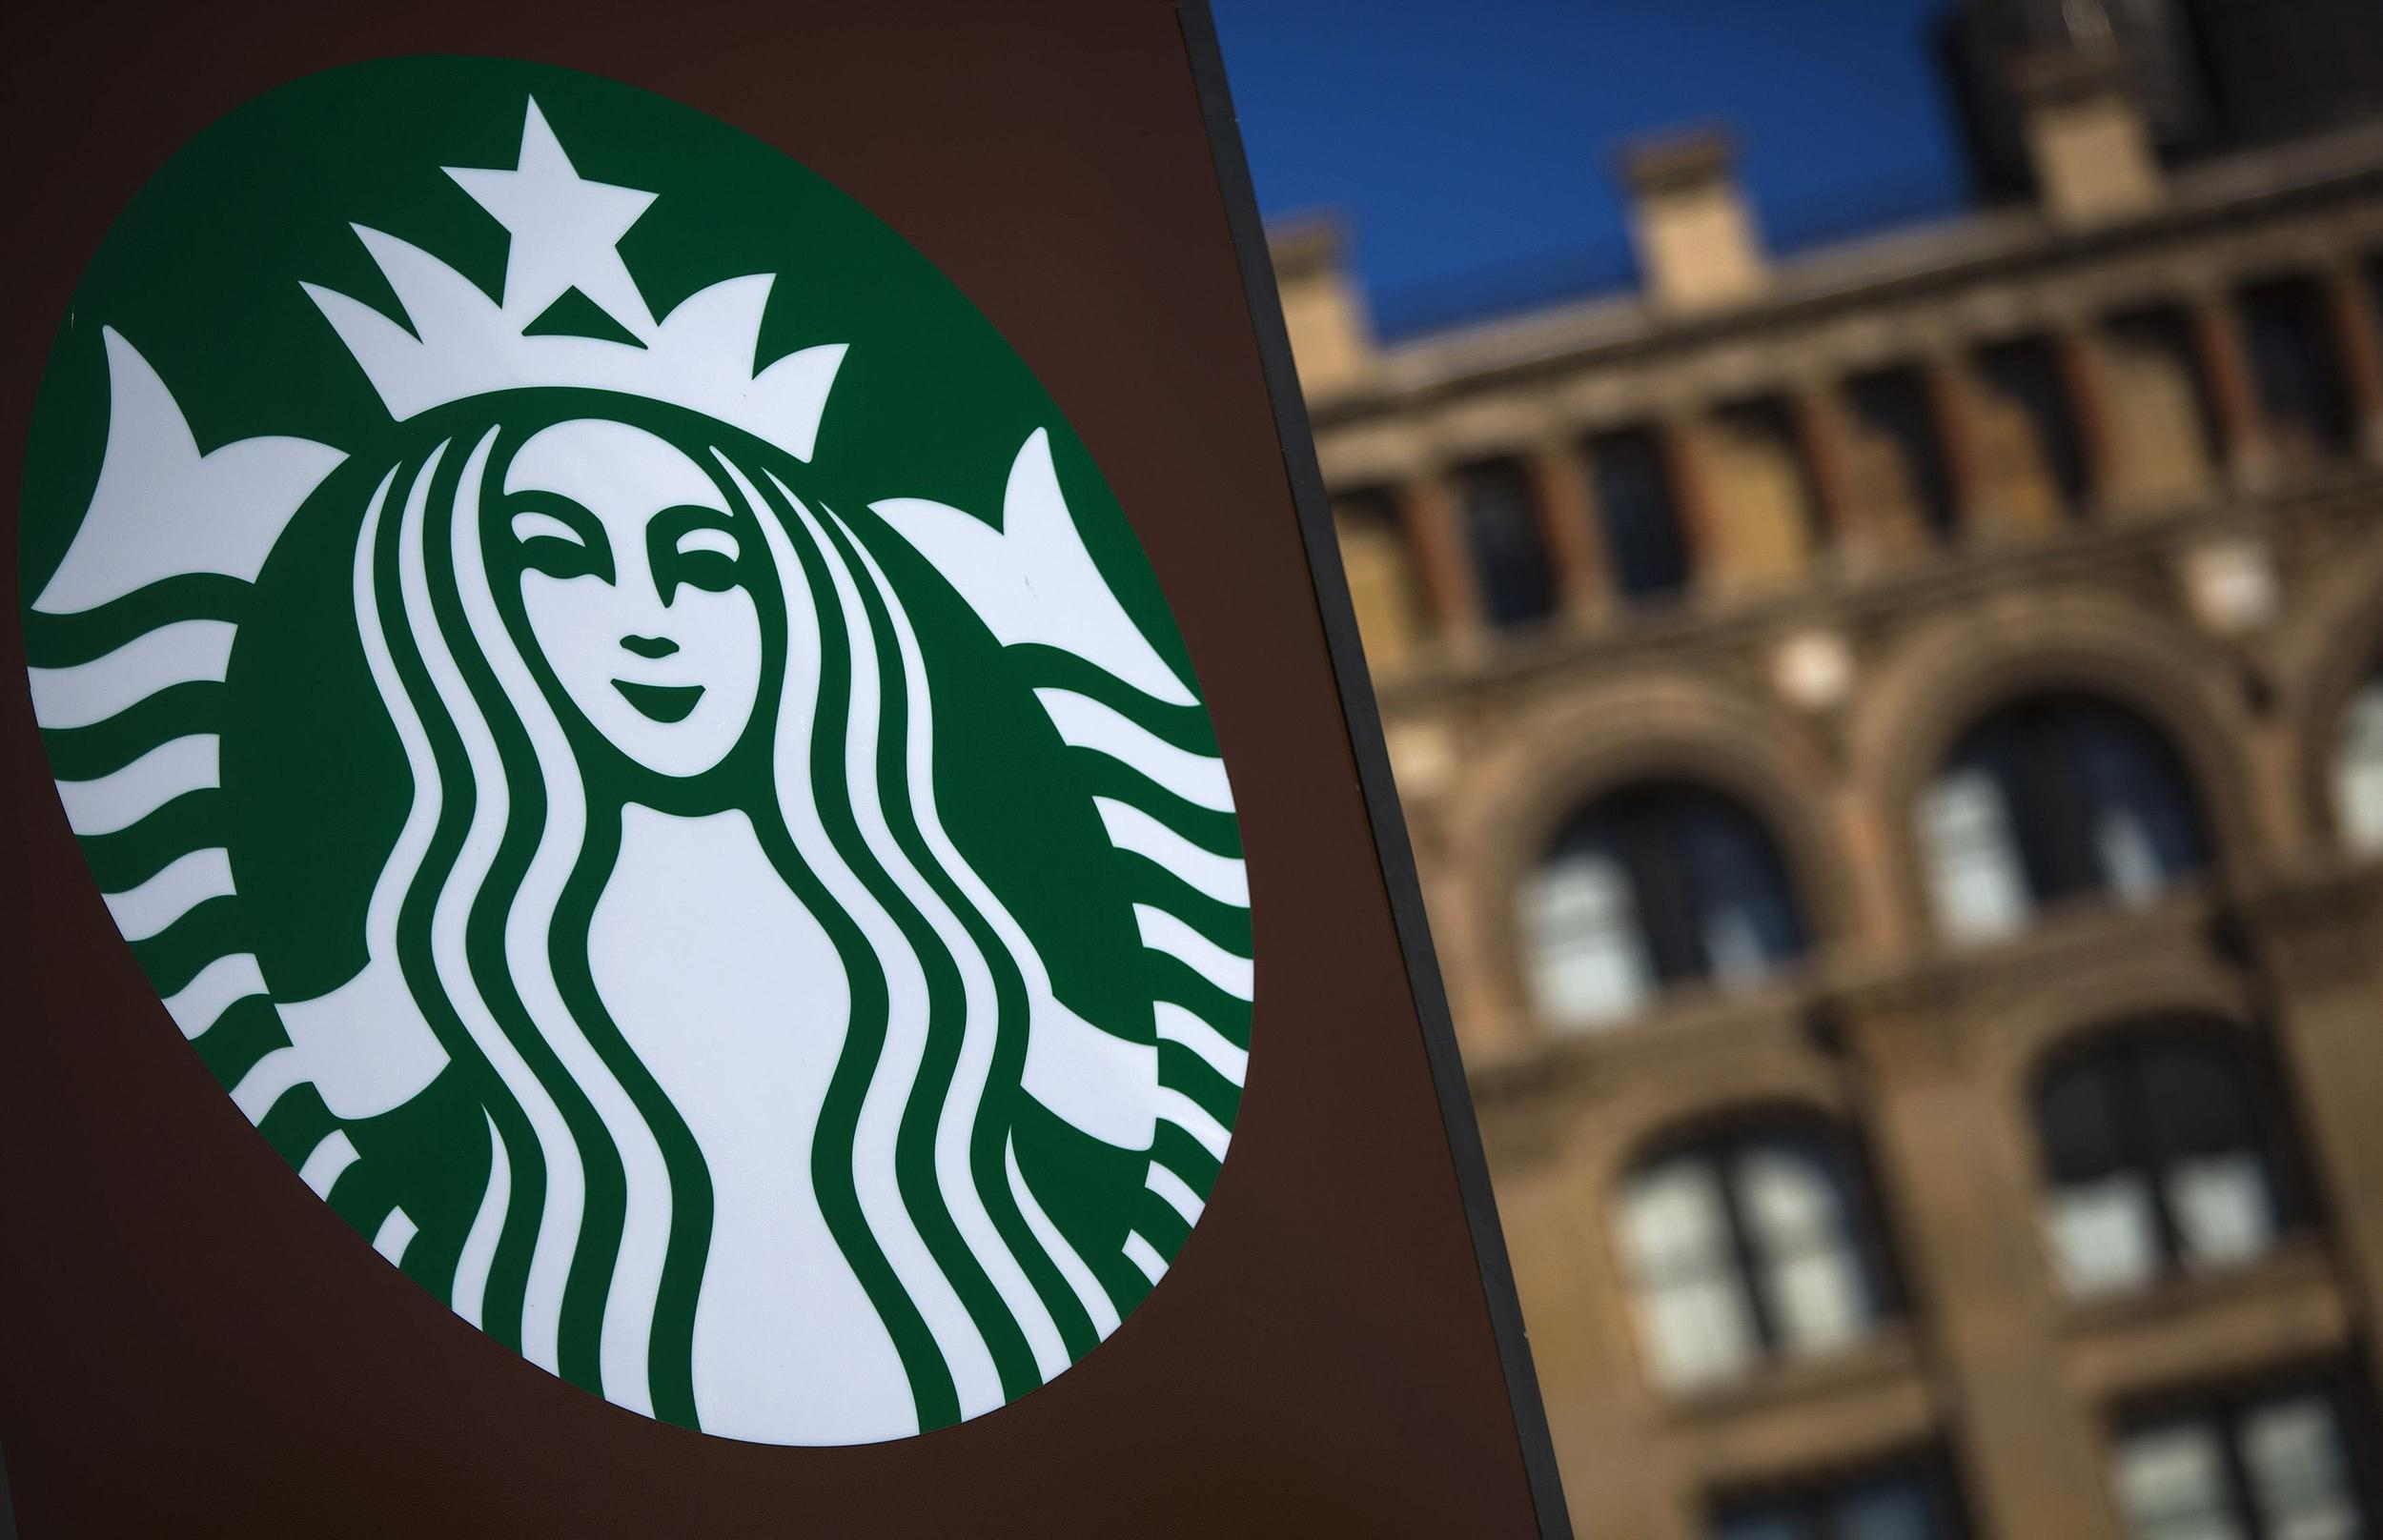 Soon. customers will be able to leave a digital tip at Starbucks